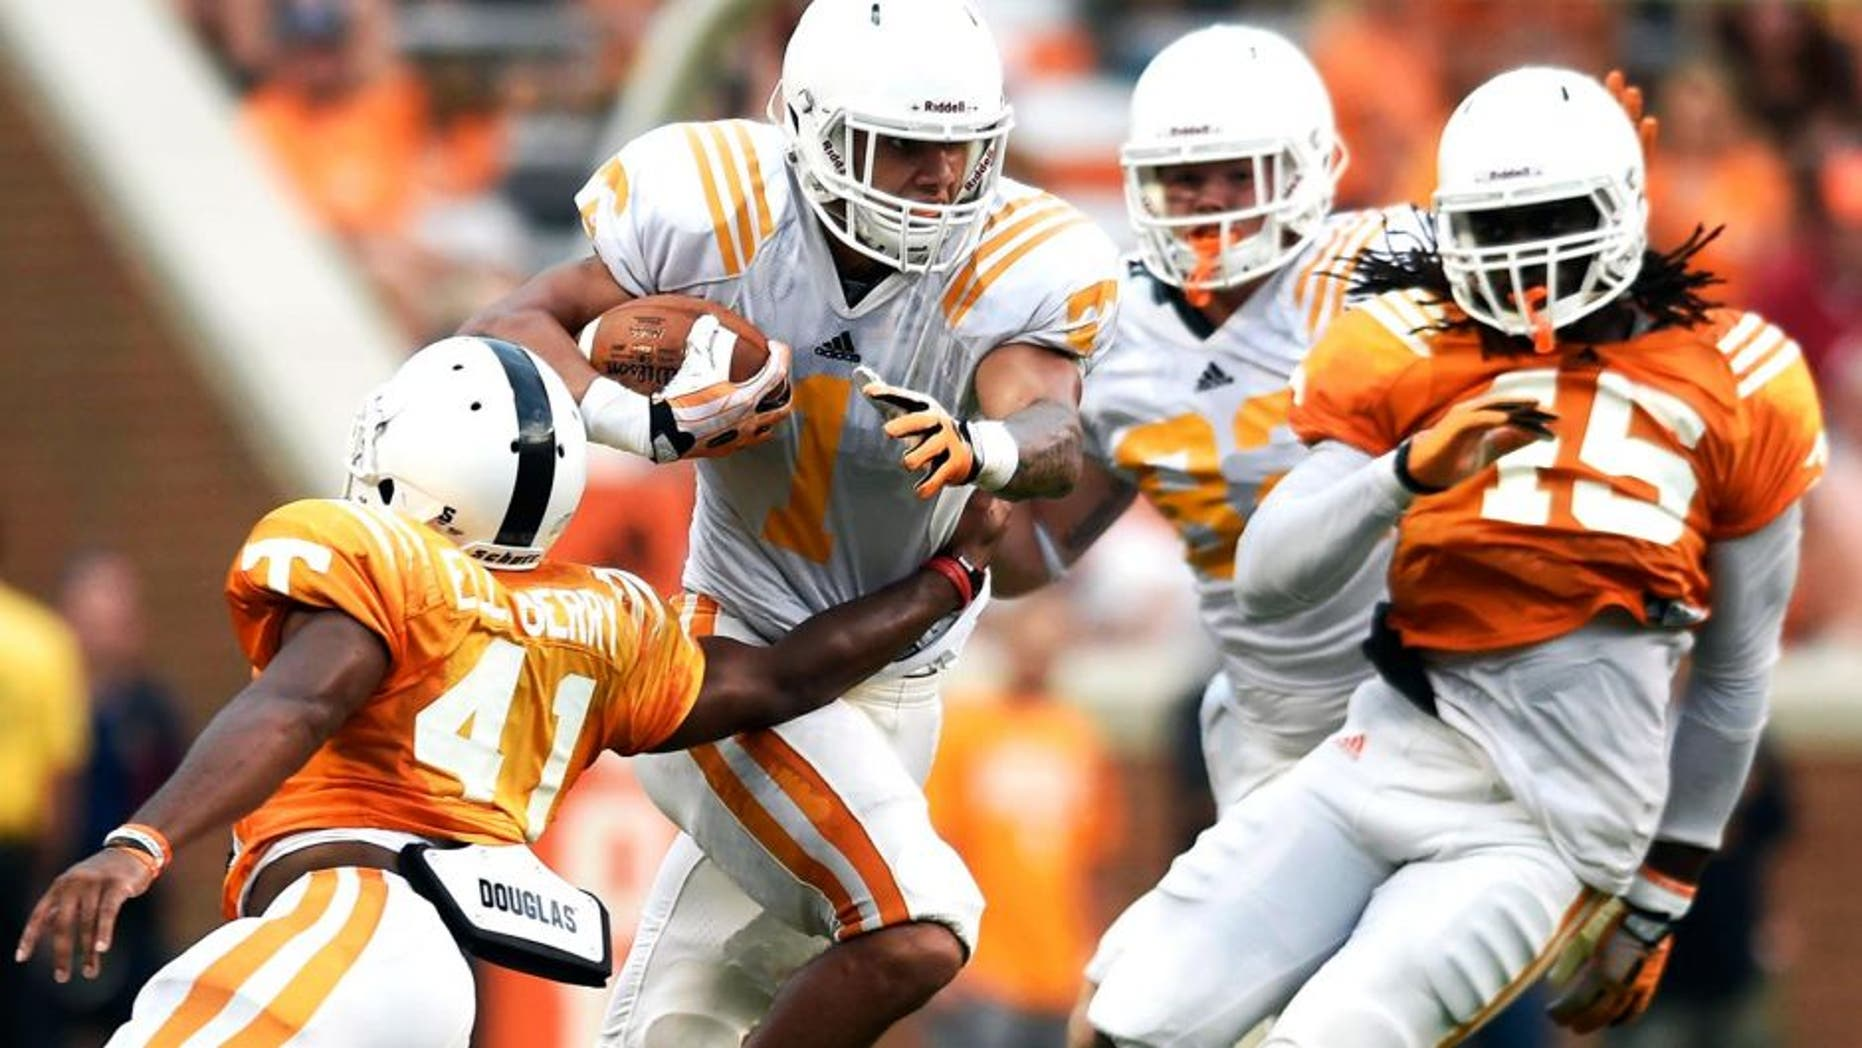 Tennessee running back Jalen Hurd (1) breaks a tackle by Tennessee defensive back Elliott Berry (41) during Tennessee's open practice at Neyland Stadium in Knoxville on Saturday, Aug. 16, 2014. (AP Photo/Knoxville News Sentinel, Adam Lau)